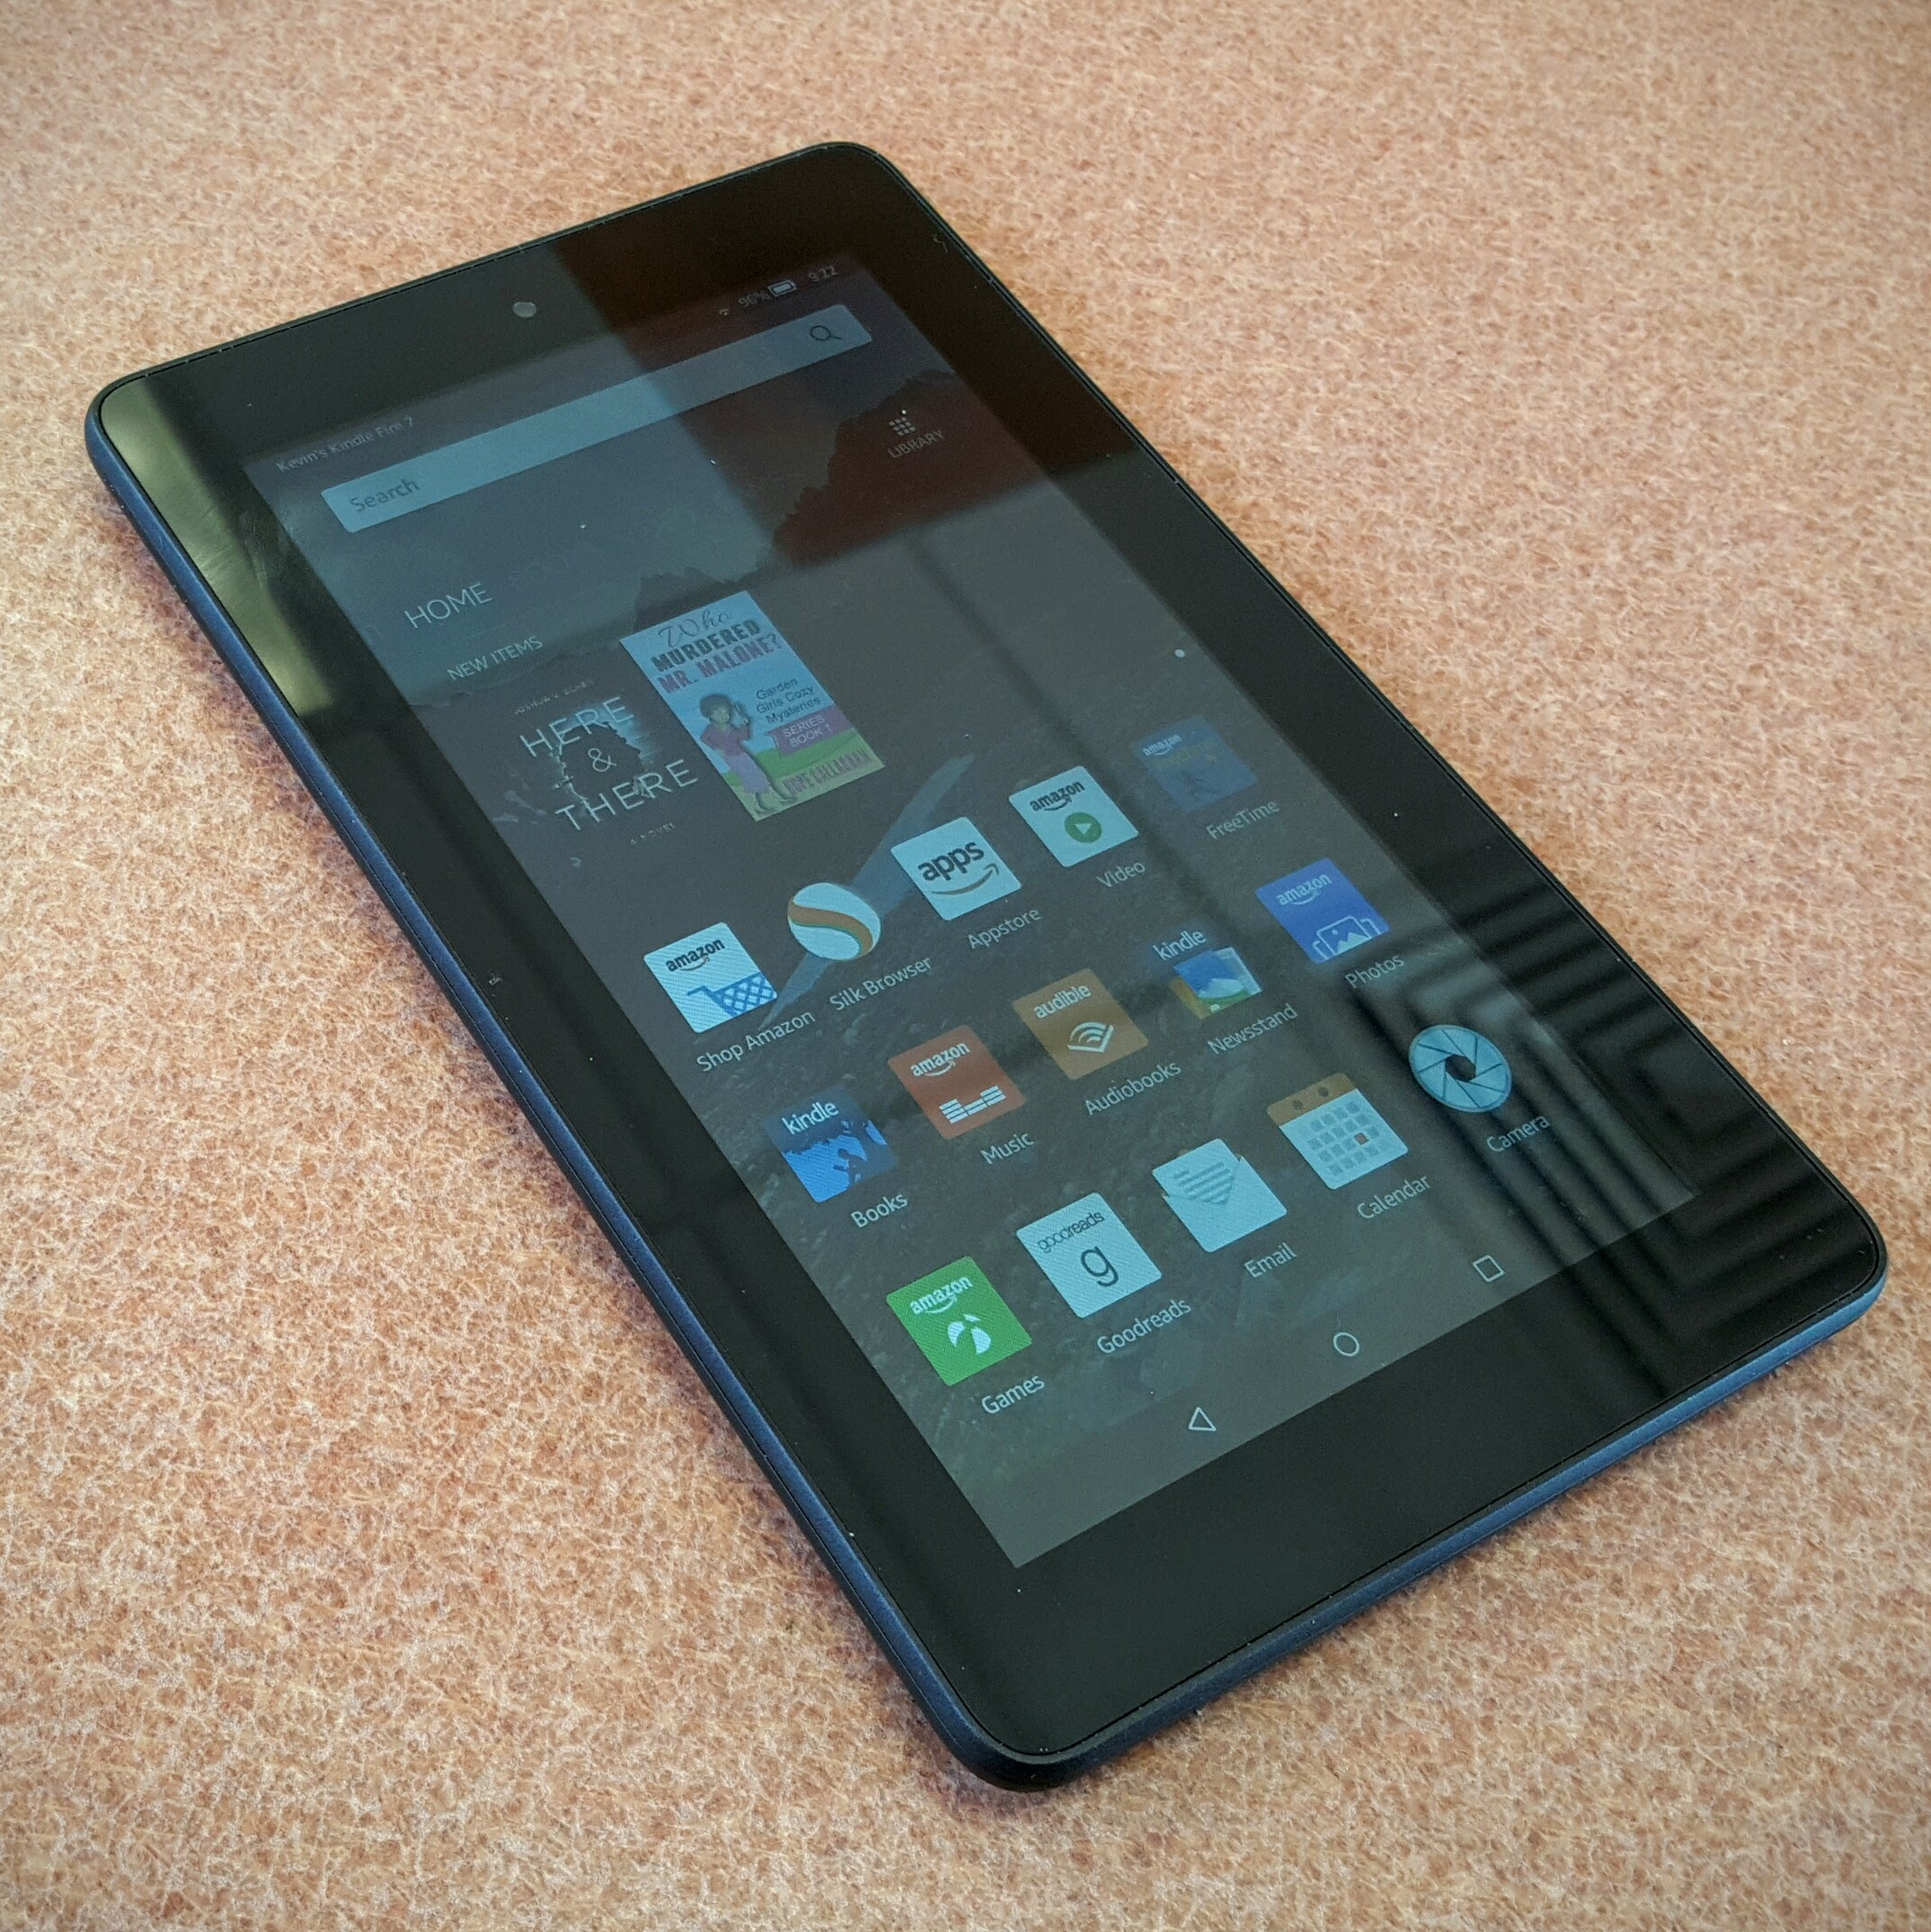 Kindle Fire 7 Review: $50 Tablet Satisfies Most Needs at a Great Price